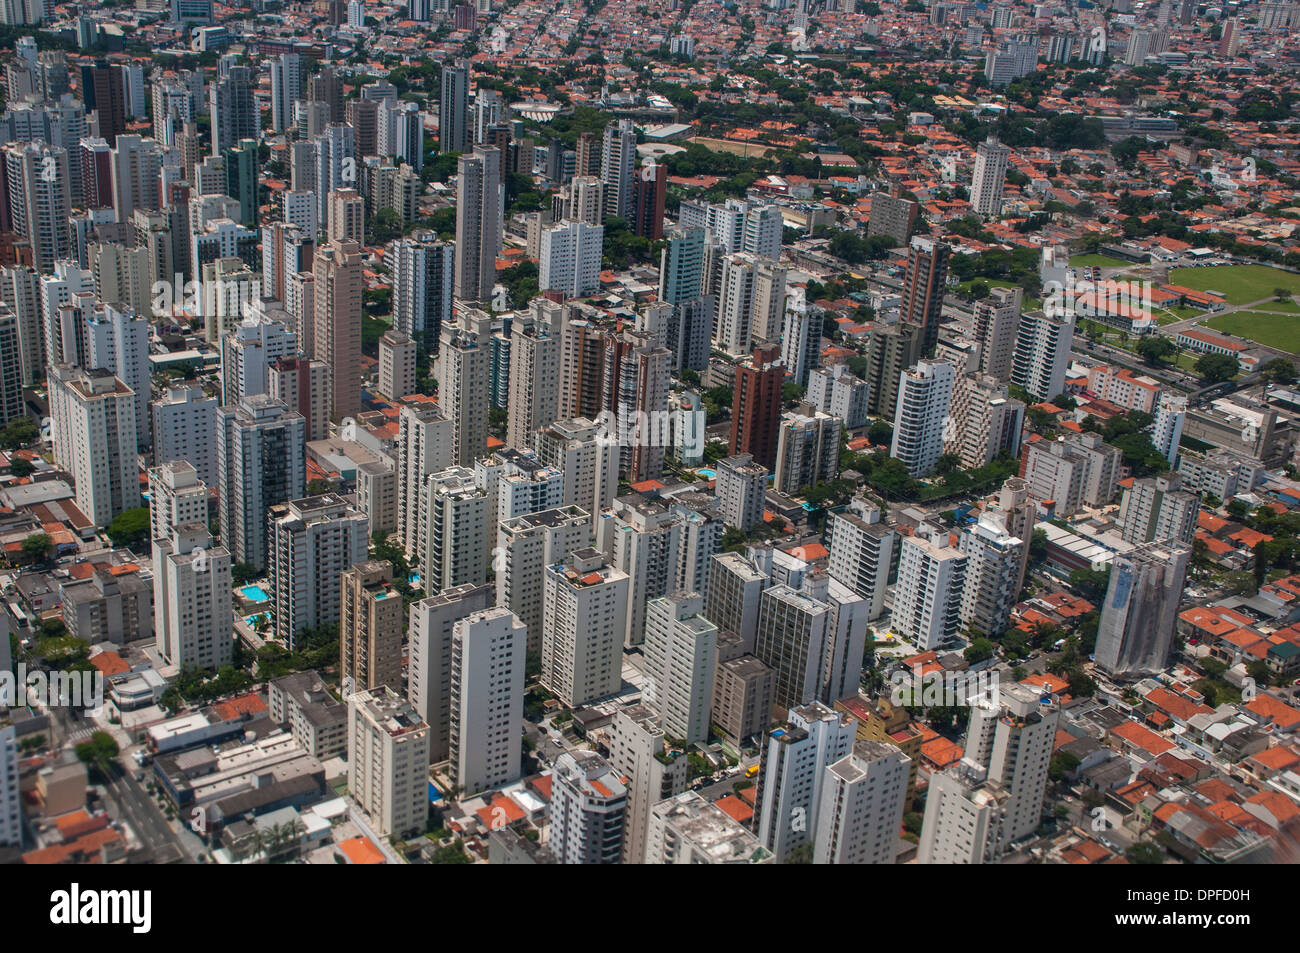 Aerial of Sao Paulo, Brazil, South America - Stock Image